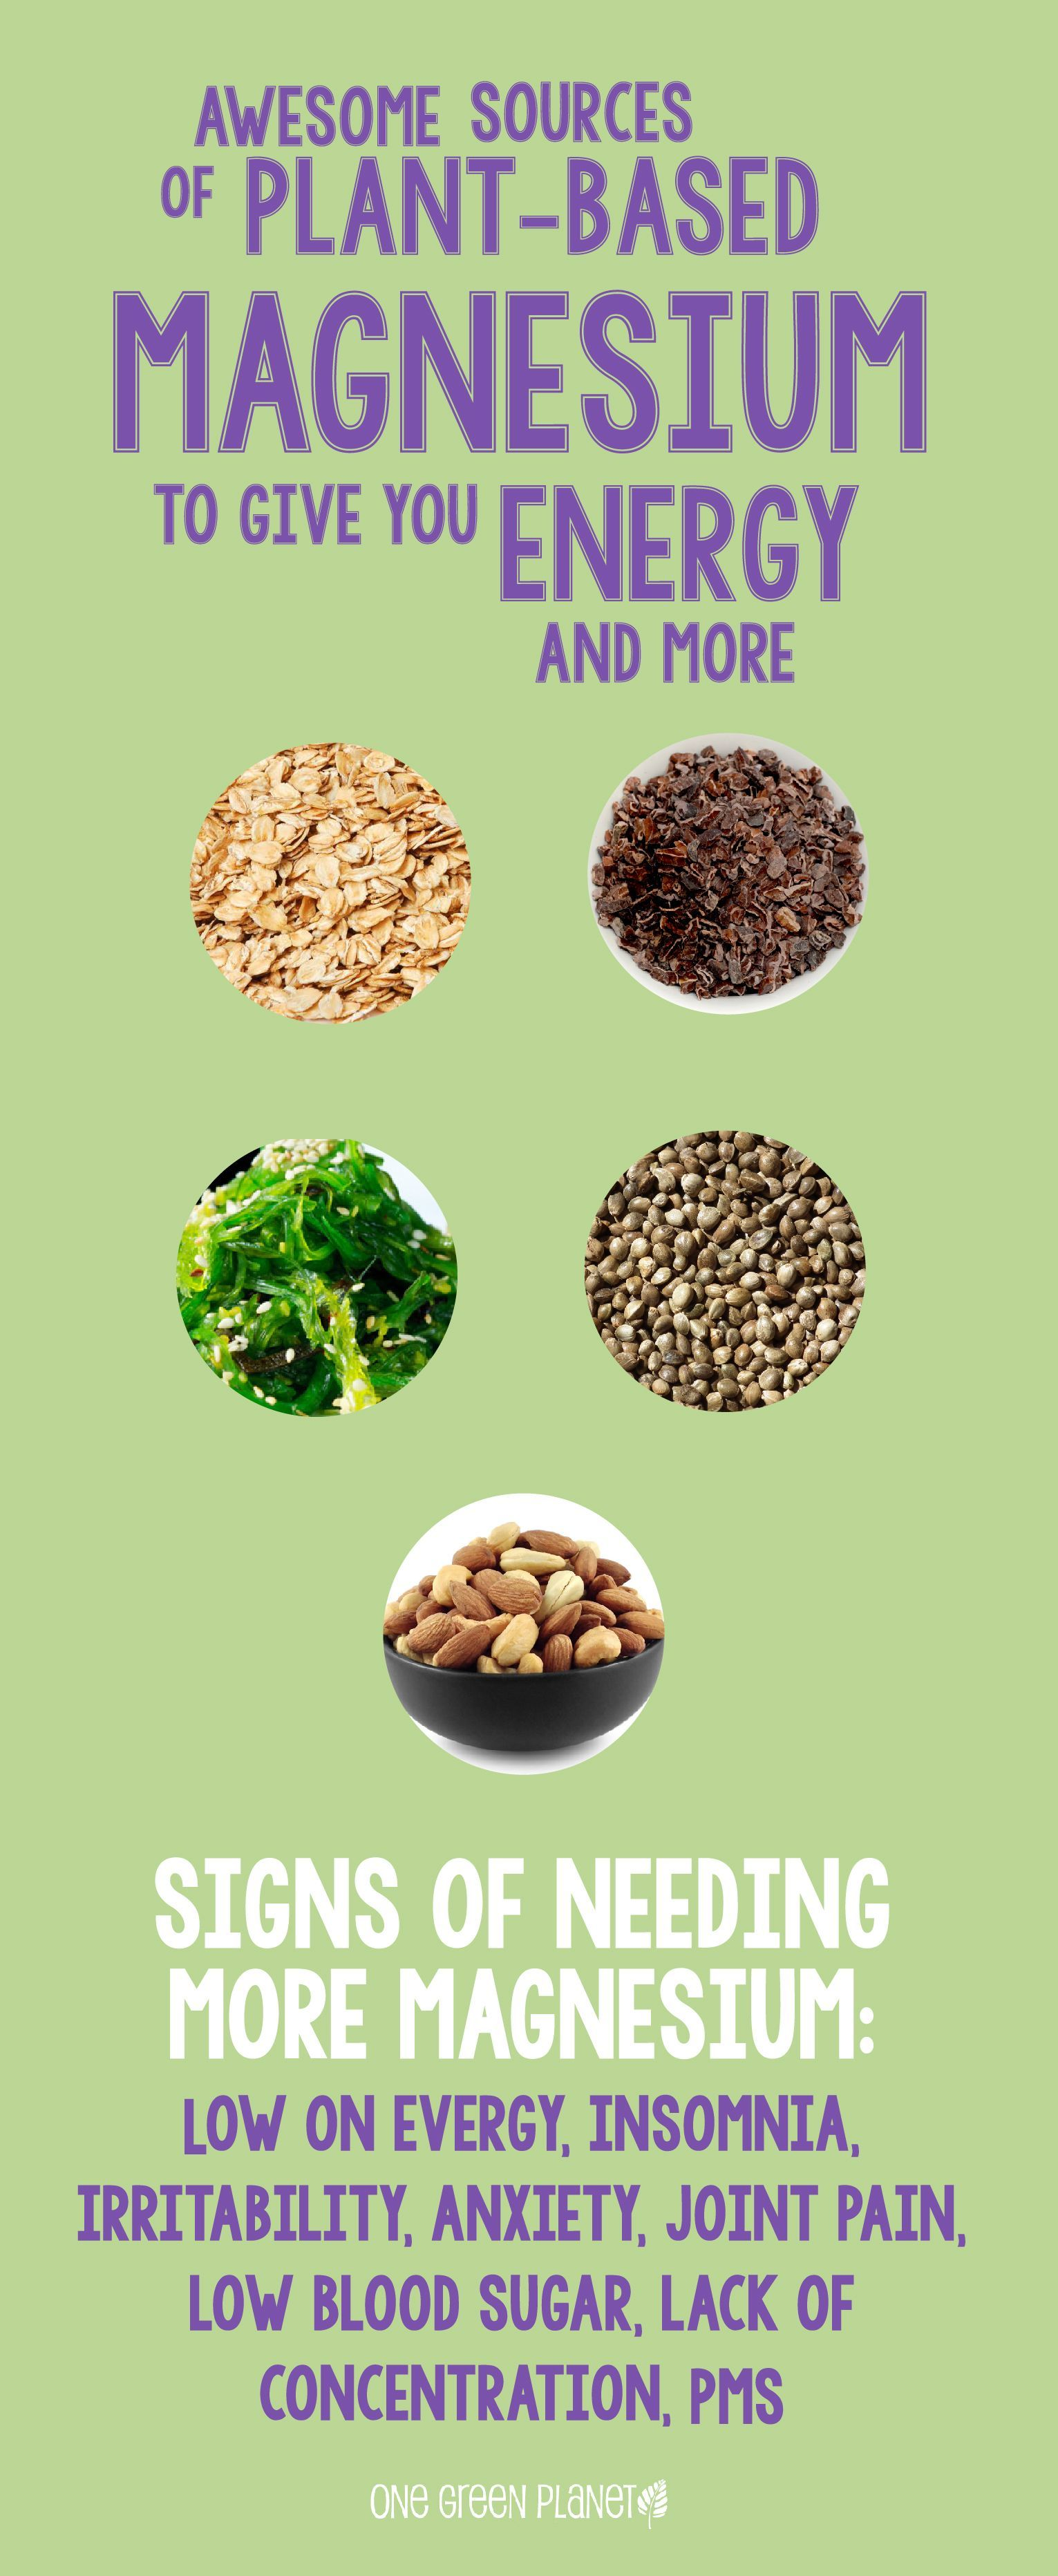 Awesome Sources of Plant-Based Magnesium to Give You Energy and More! Natural plant based diet: magnesium for energy and moreNatural plant based diet: magnesium for energy and more